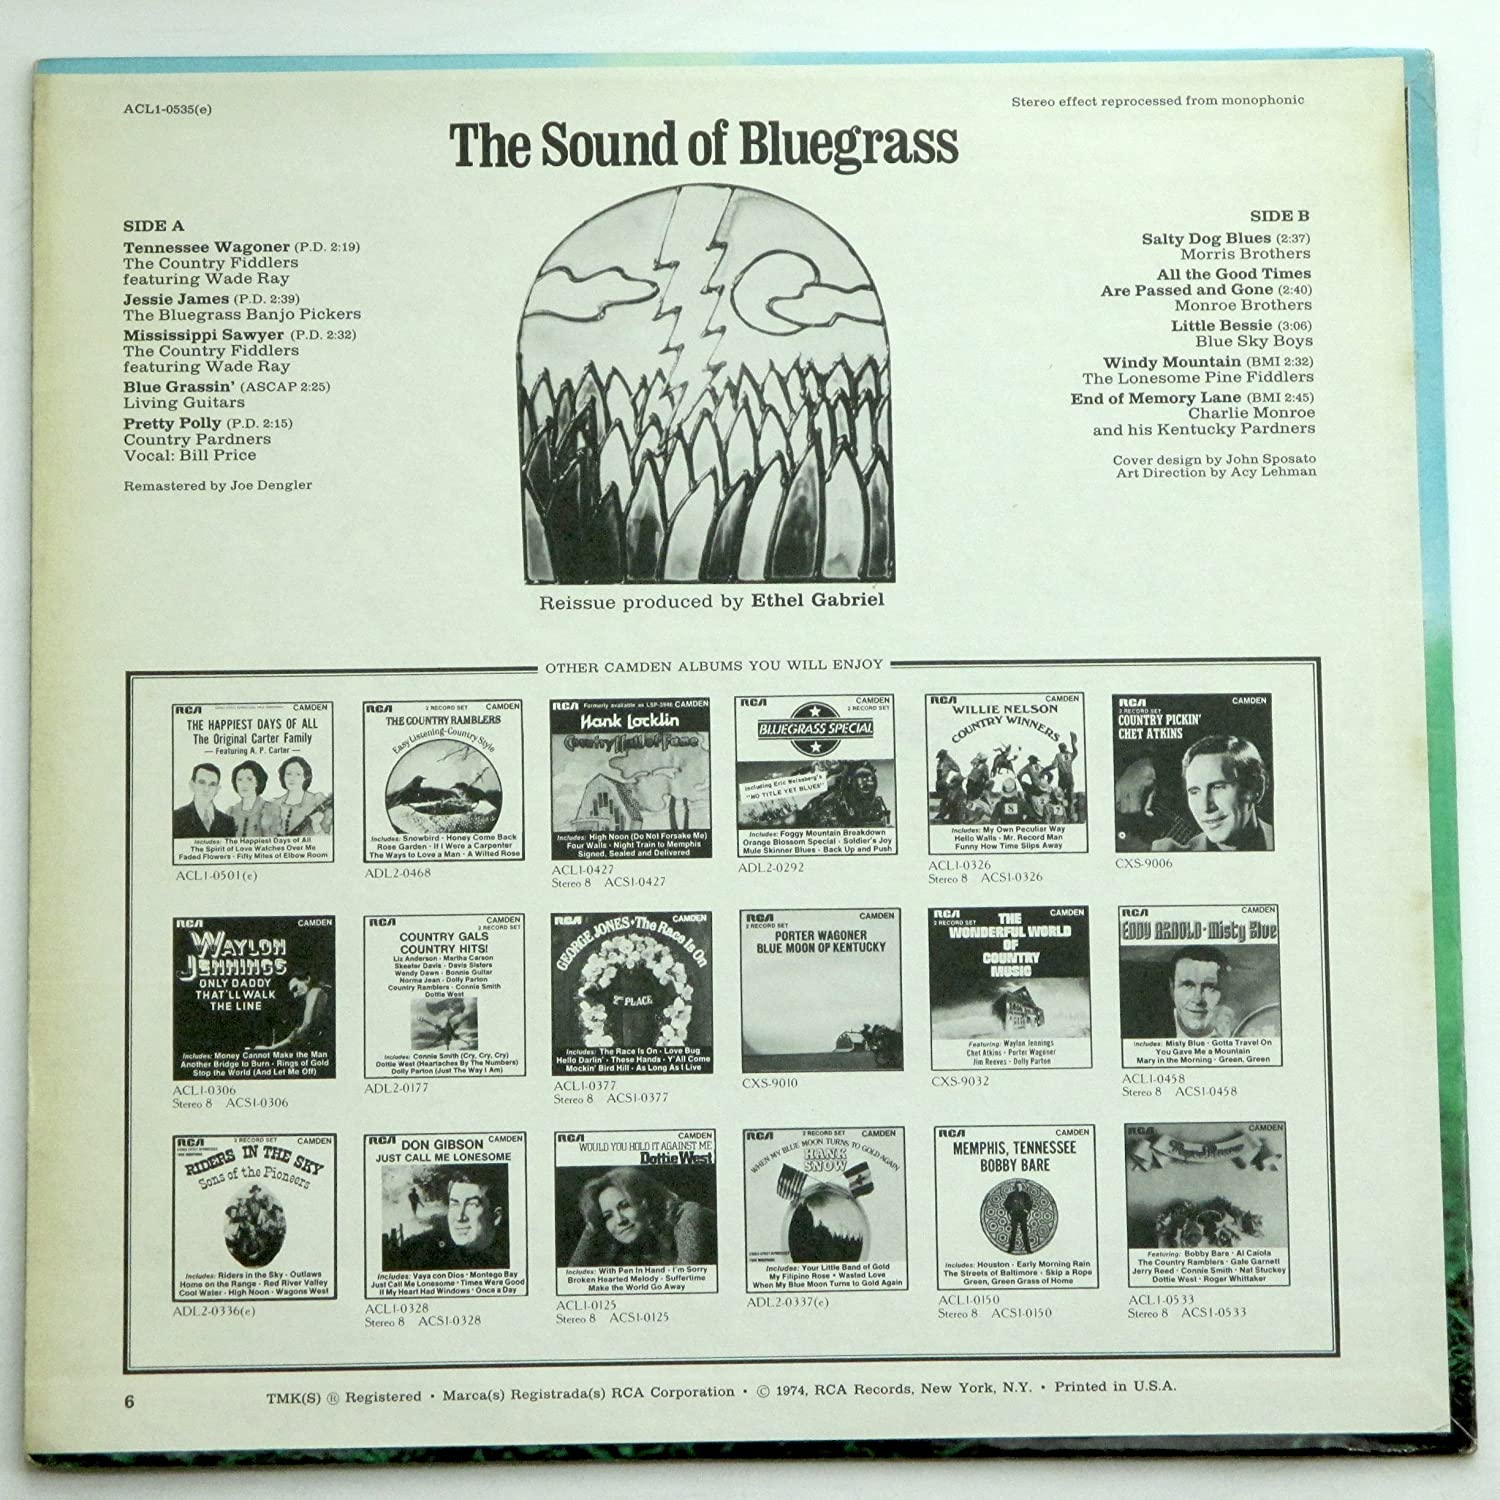 Amazon.com: The Sound of Bluegrass: Music